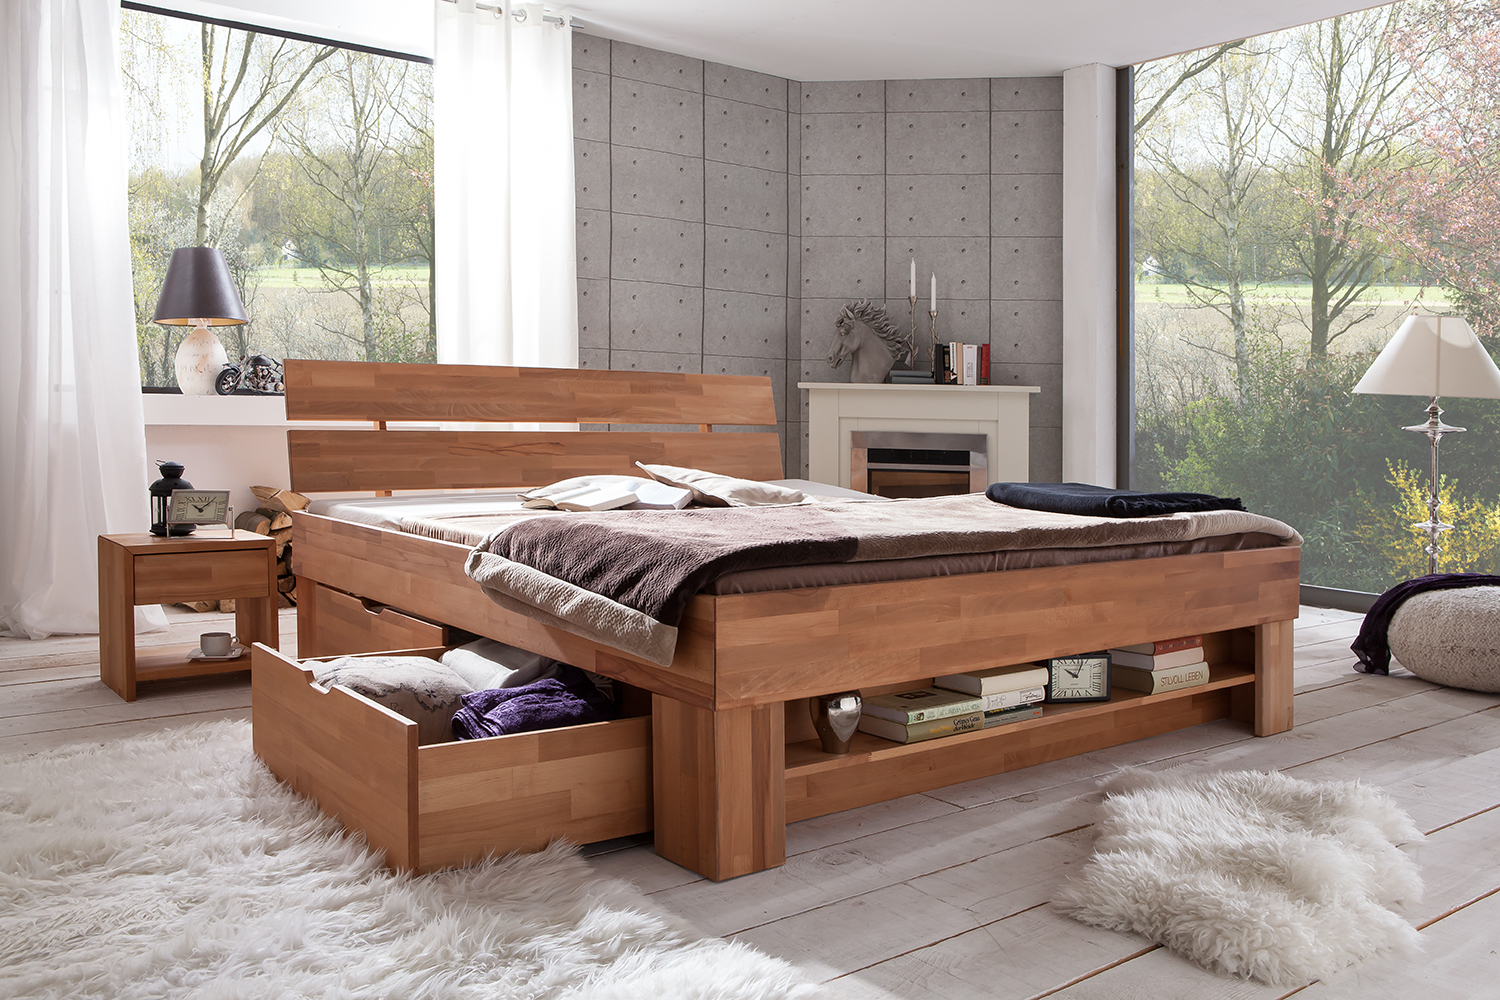 futonbett kernbuche massiv ge lt mit bettkasten sofie elfo. Black Bedroom Furniture Sets. Home Design Ideas